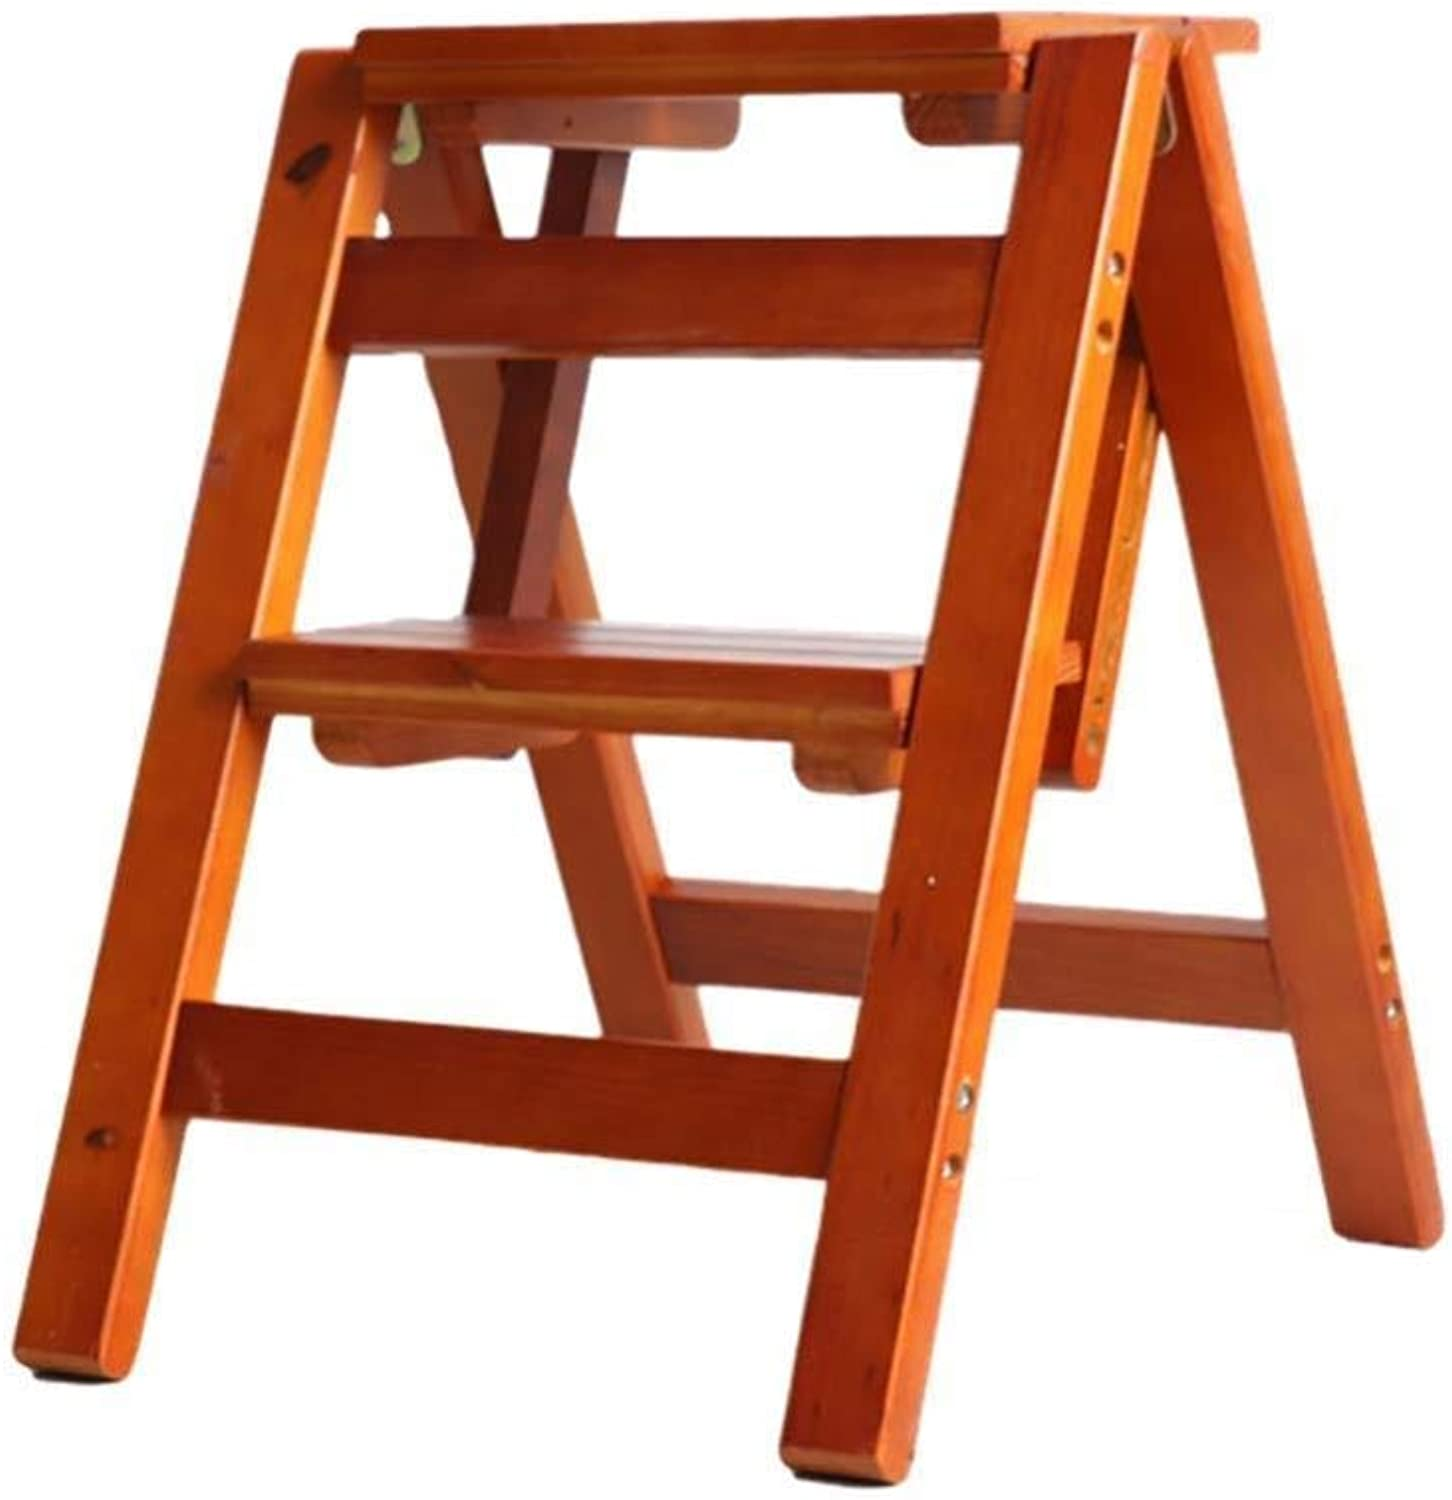 Step Stool 2 Steps Folding Ladder Stool Multifunction Ladder Dual Purpose Household Staircase Solid Wood Step Stool ladders Step Stool (color   Brown)